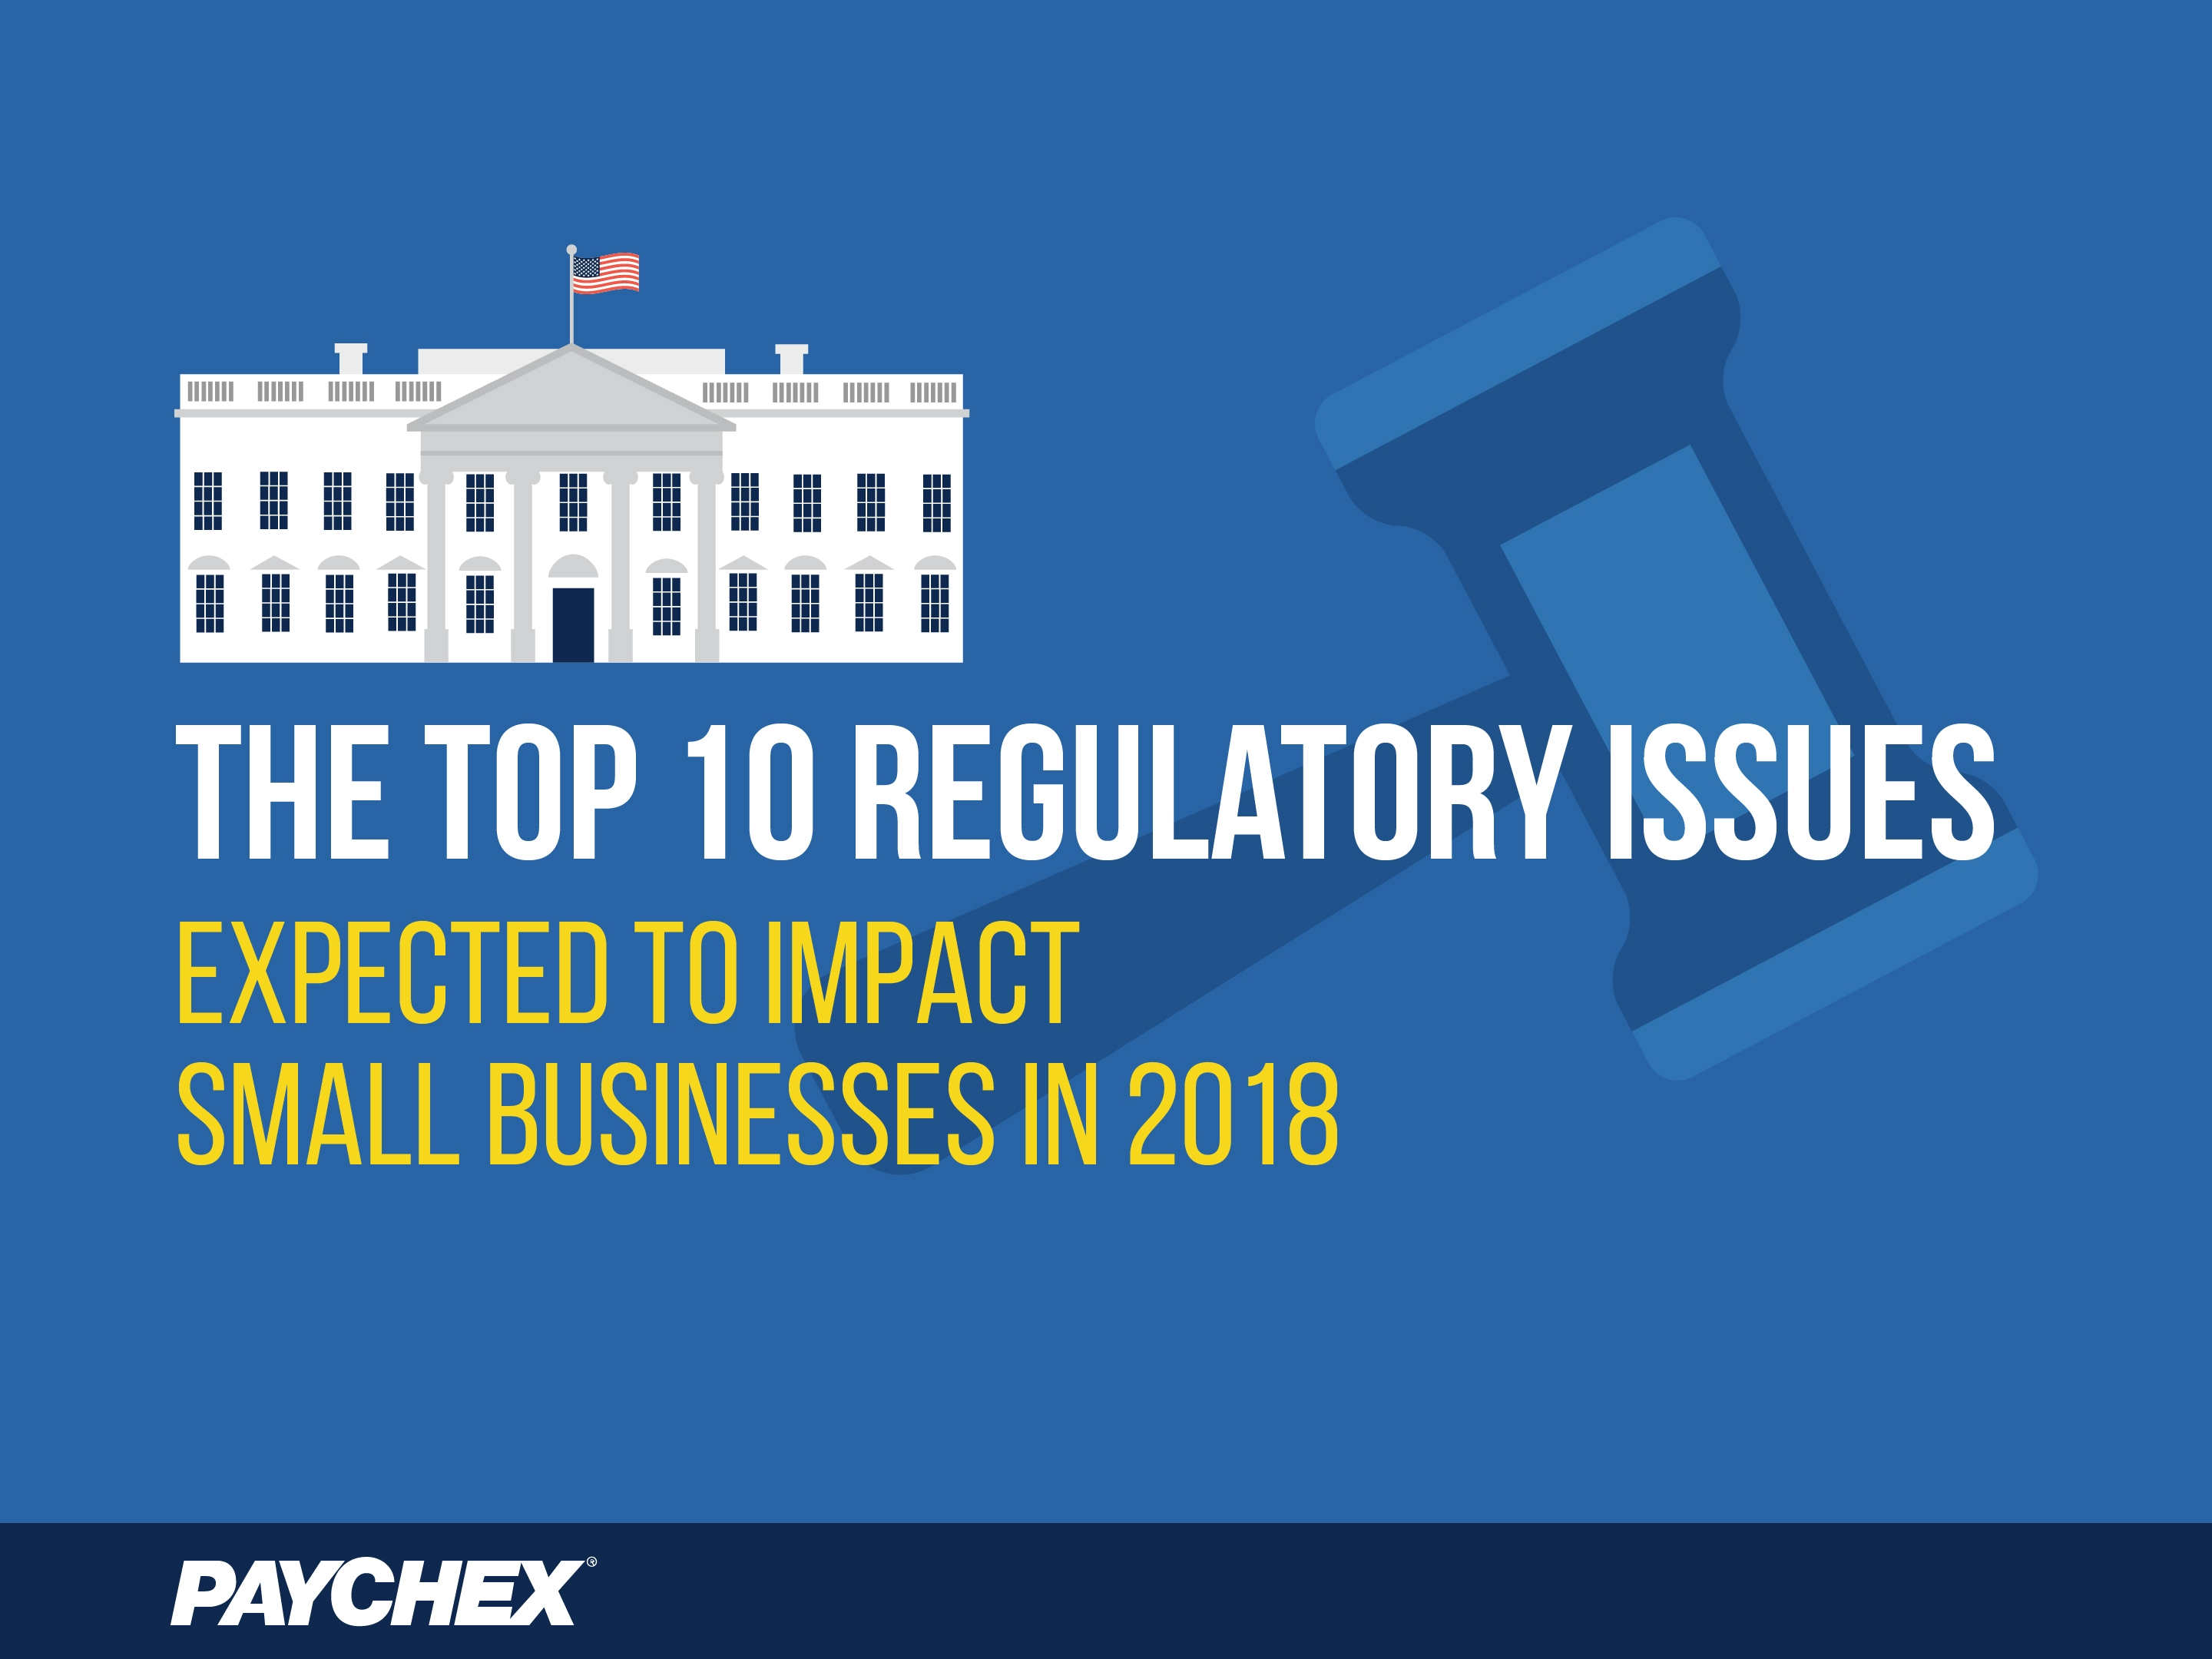 10 Top Regulatory Issues For Small Businesses In 2018 Paychex  Xjb